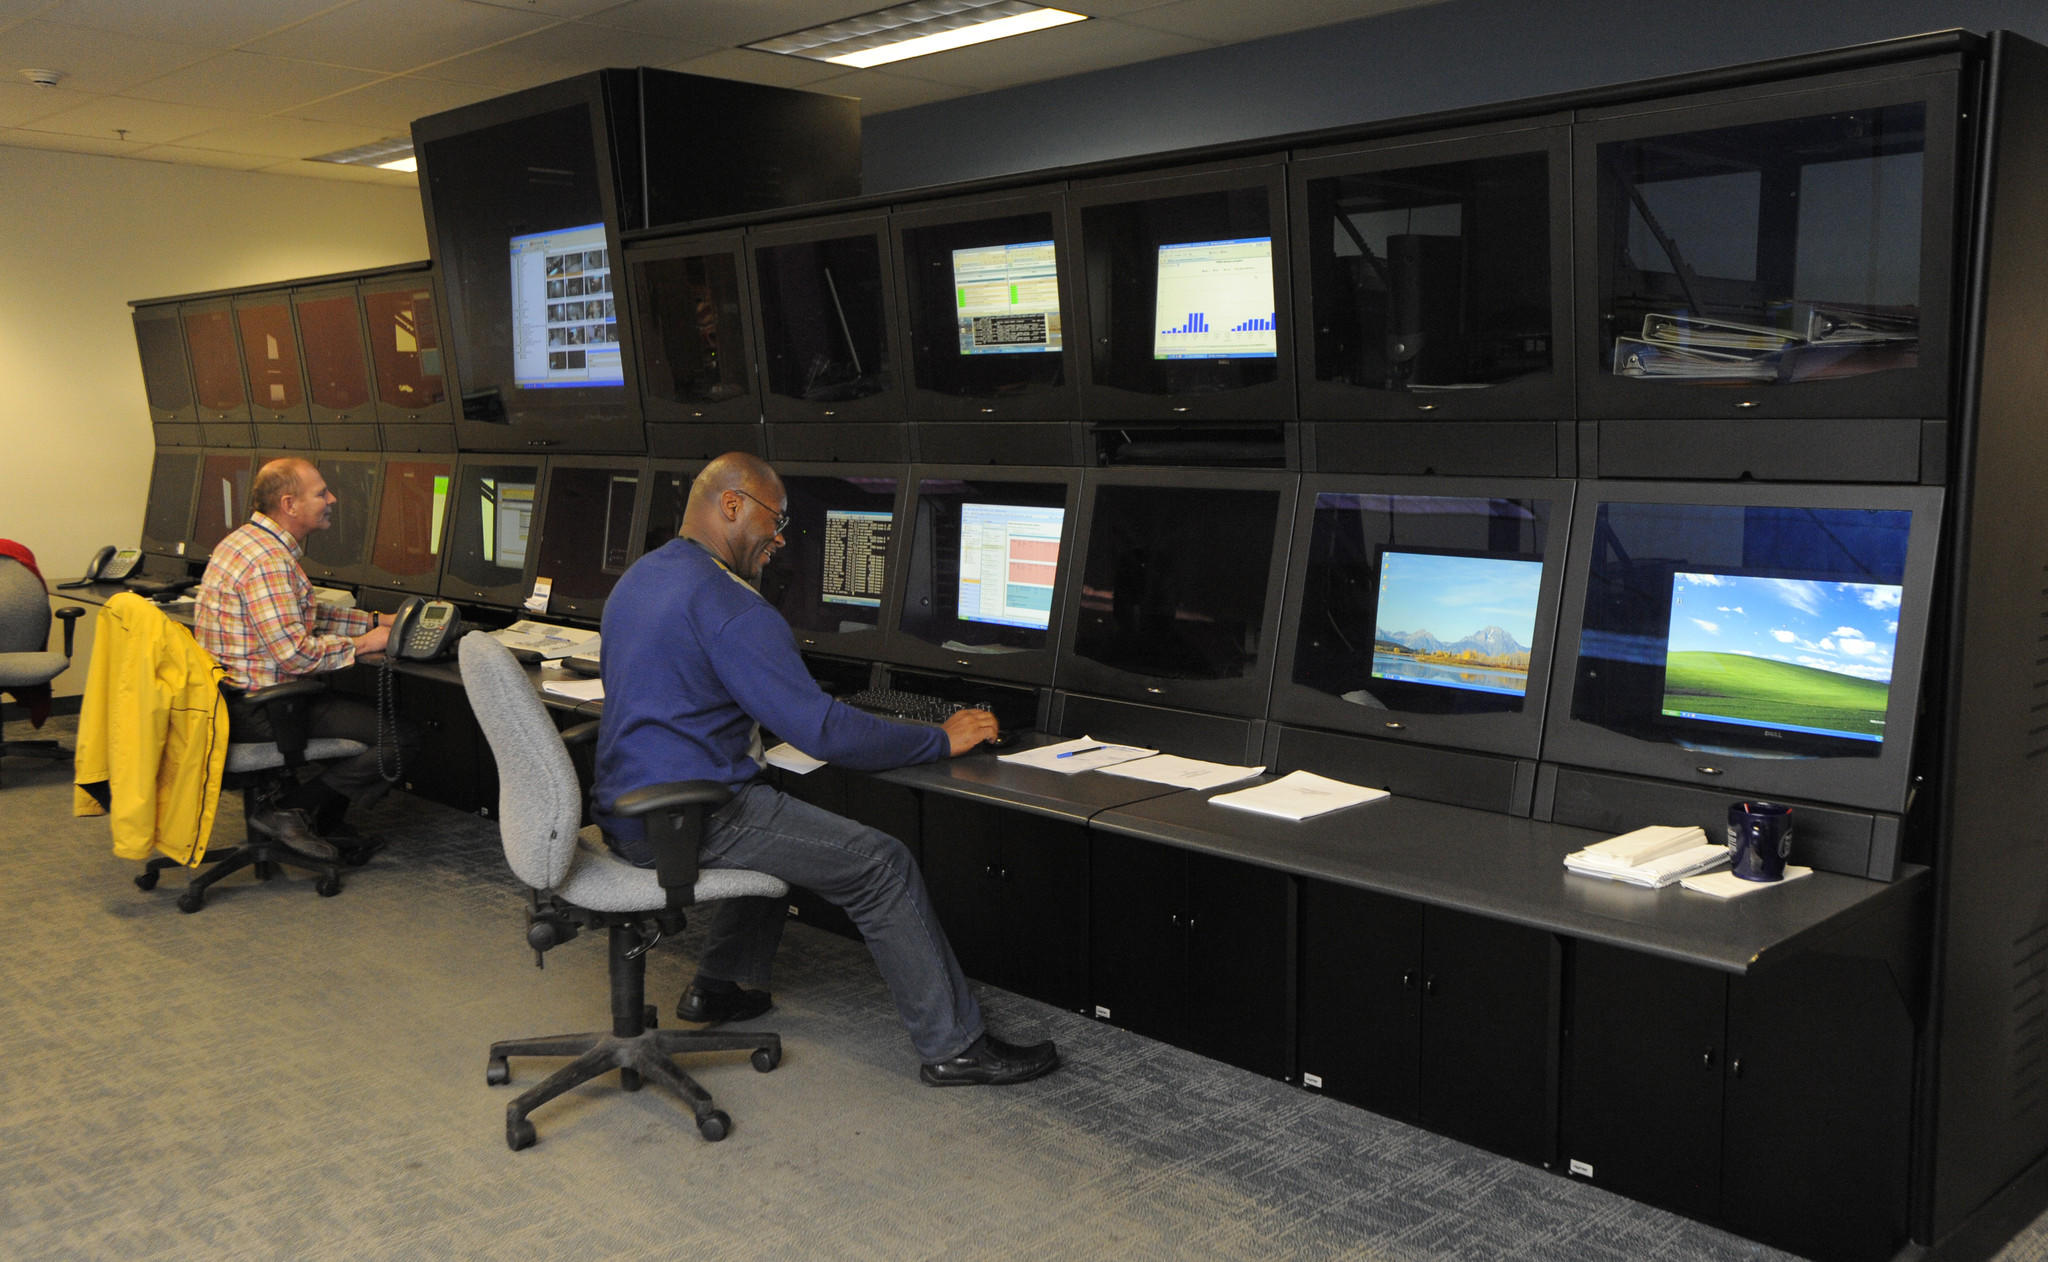 Vince Draper and Jeff McDuffie are Systems Operations Center Technicians at the John's Hopkins Systems Operations Center in Mount Washington. They can monitor physical and environmental conditions at multiple Hopkins sites thoughout the city.